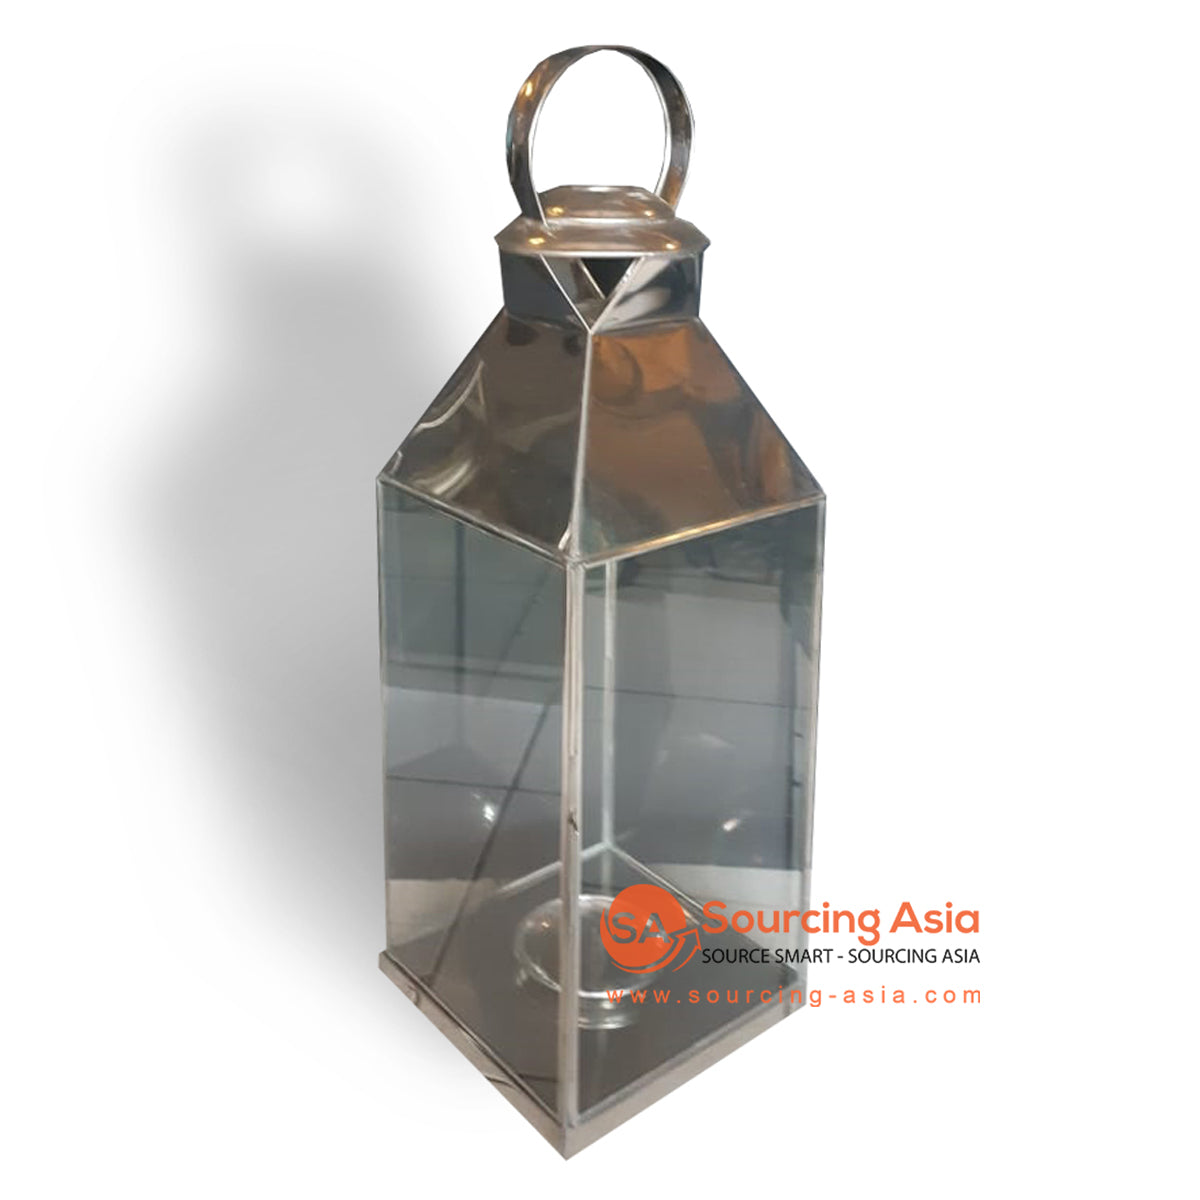 ODE036A-1 COPPER LANTERN